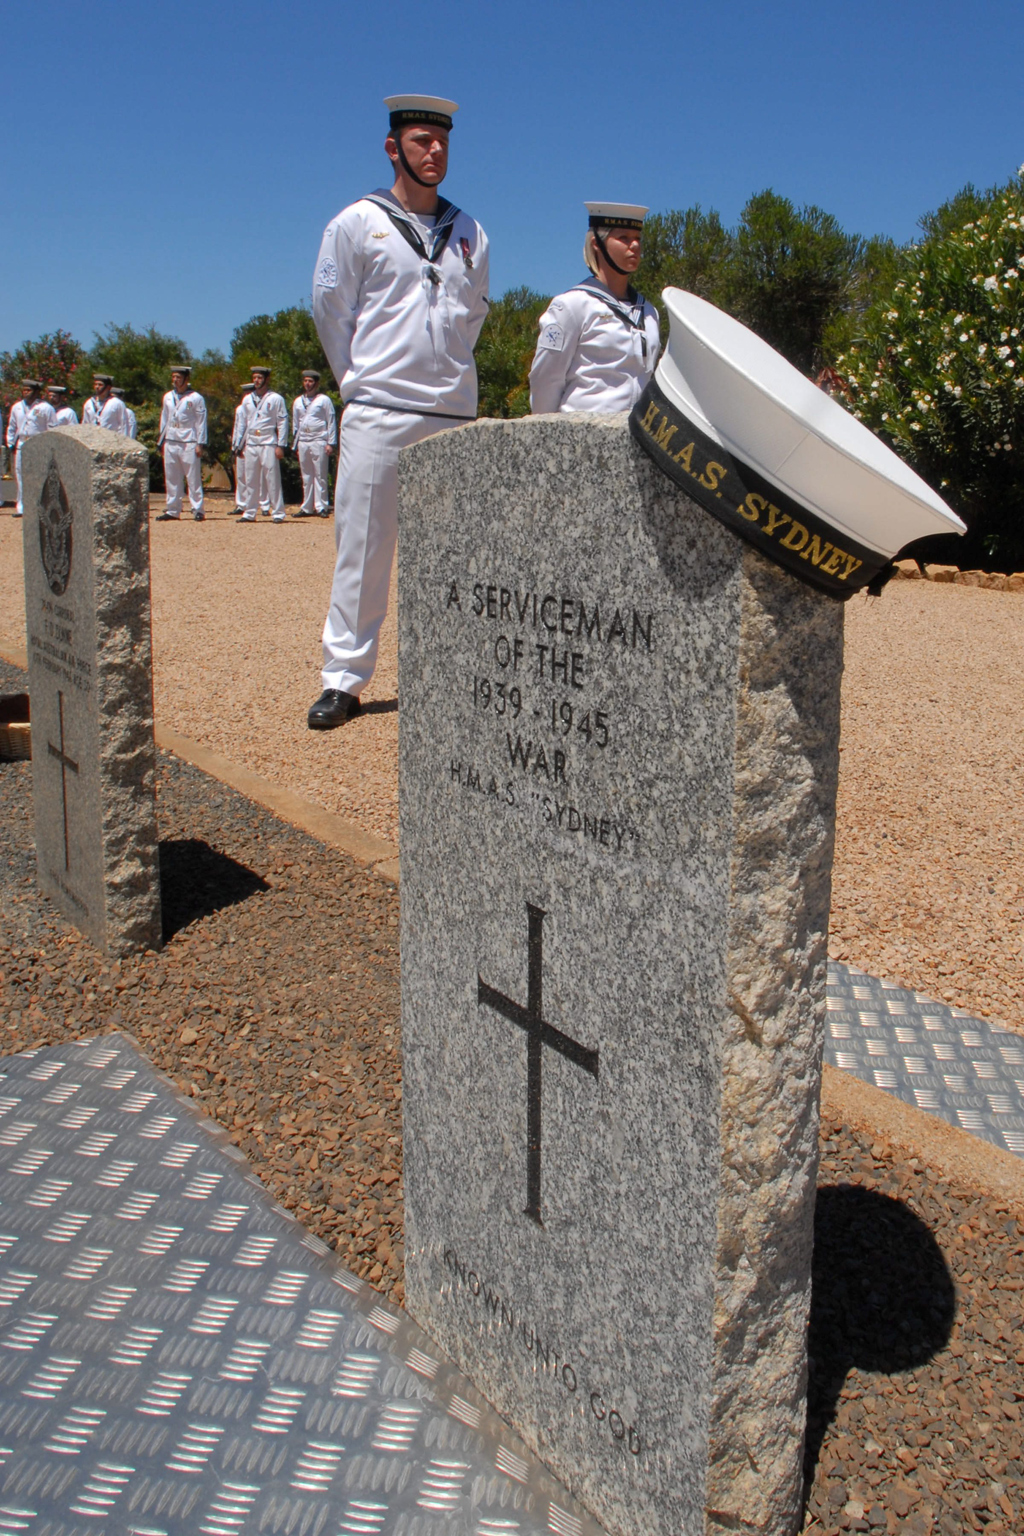 Grave of the Unknown Sailor, Geraldton War Cemetery.  Photograph: Royal Australian Navy